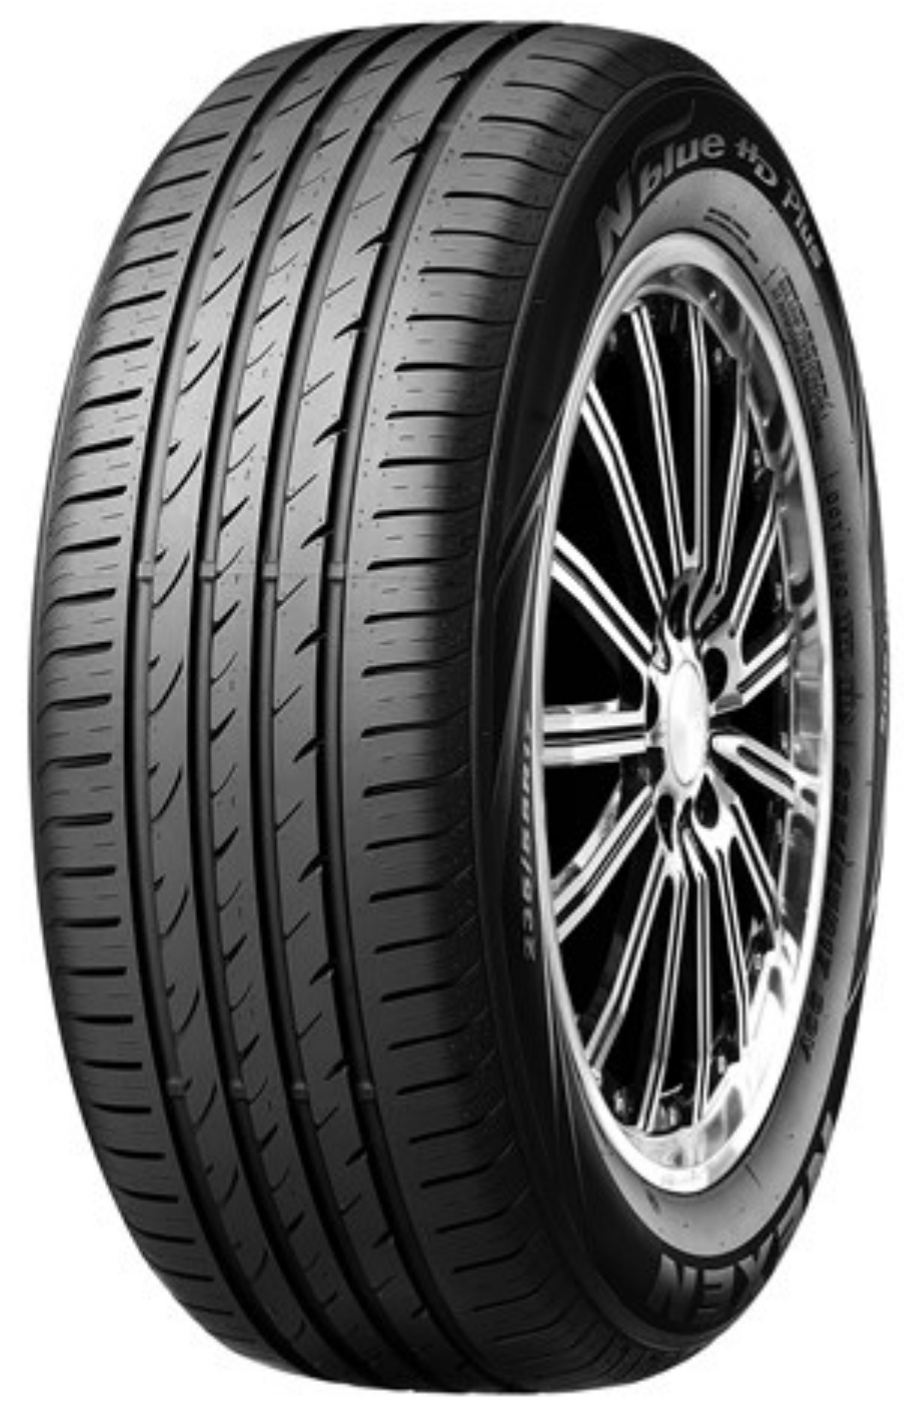 Nexen 225/60 R17 N'blue HD Plus [99] V